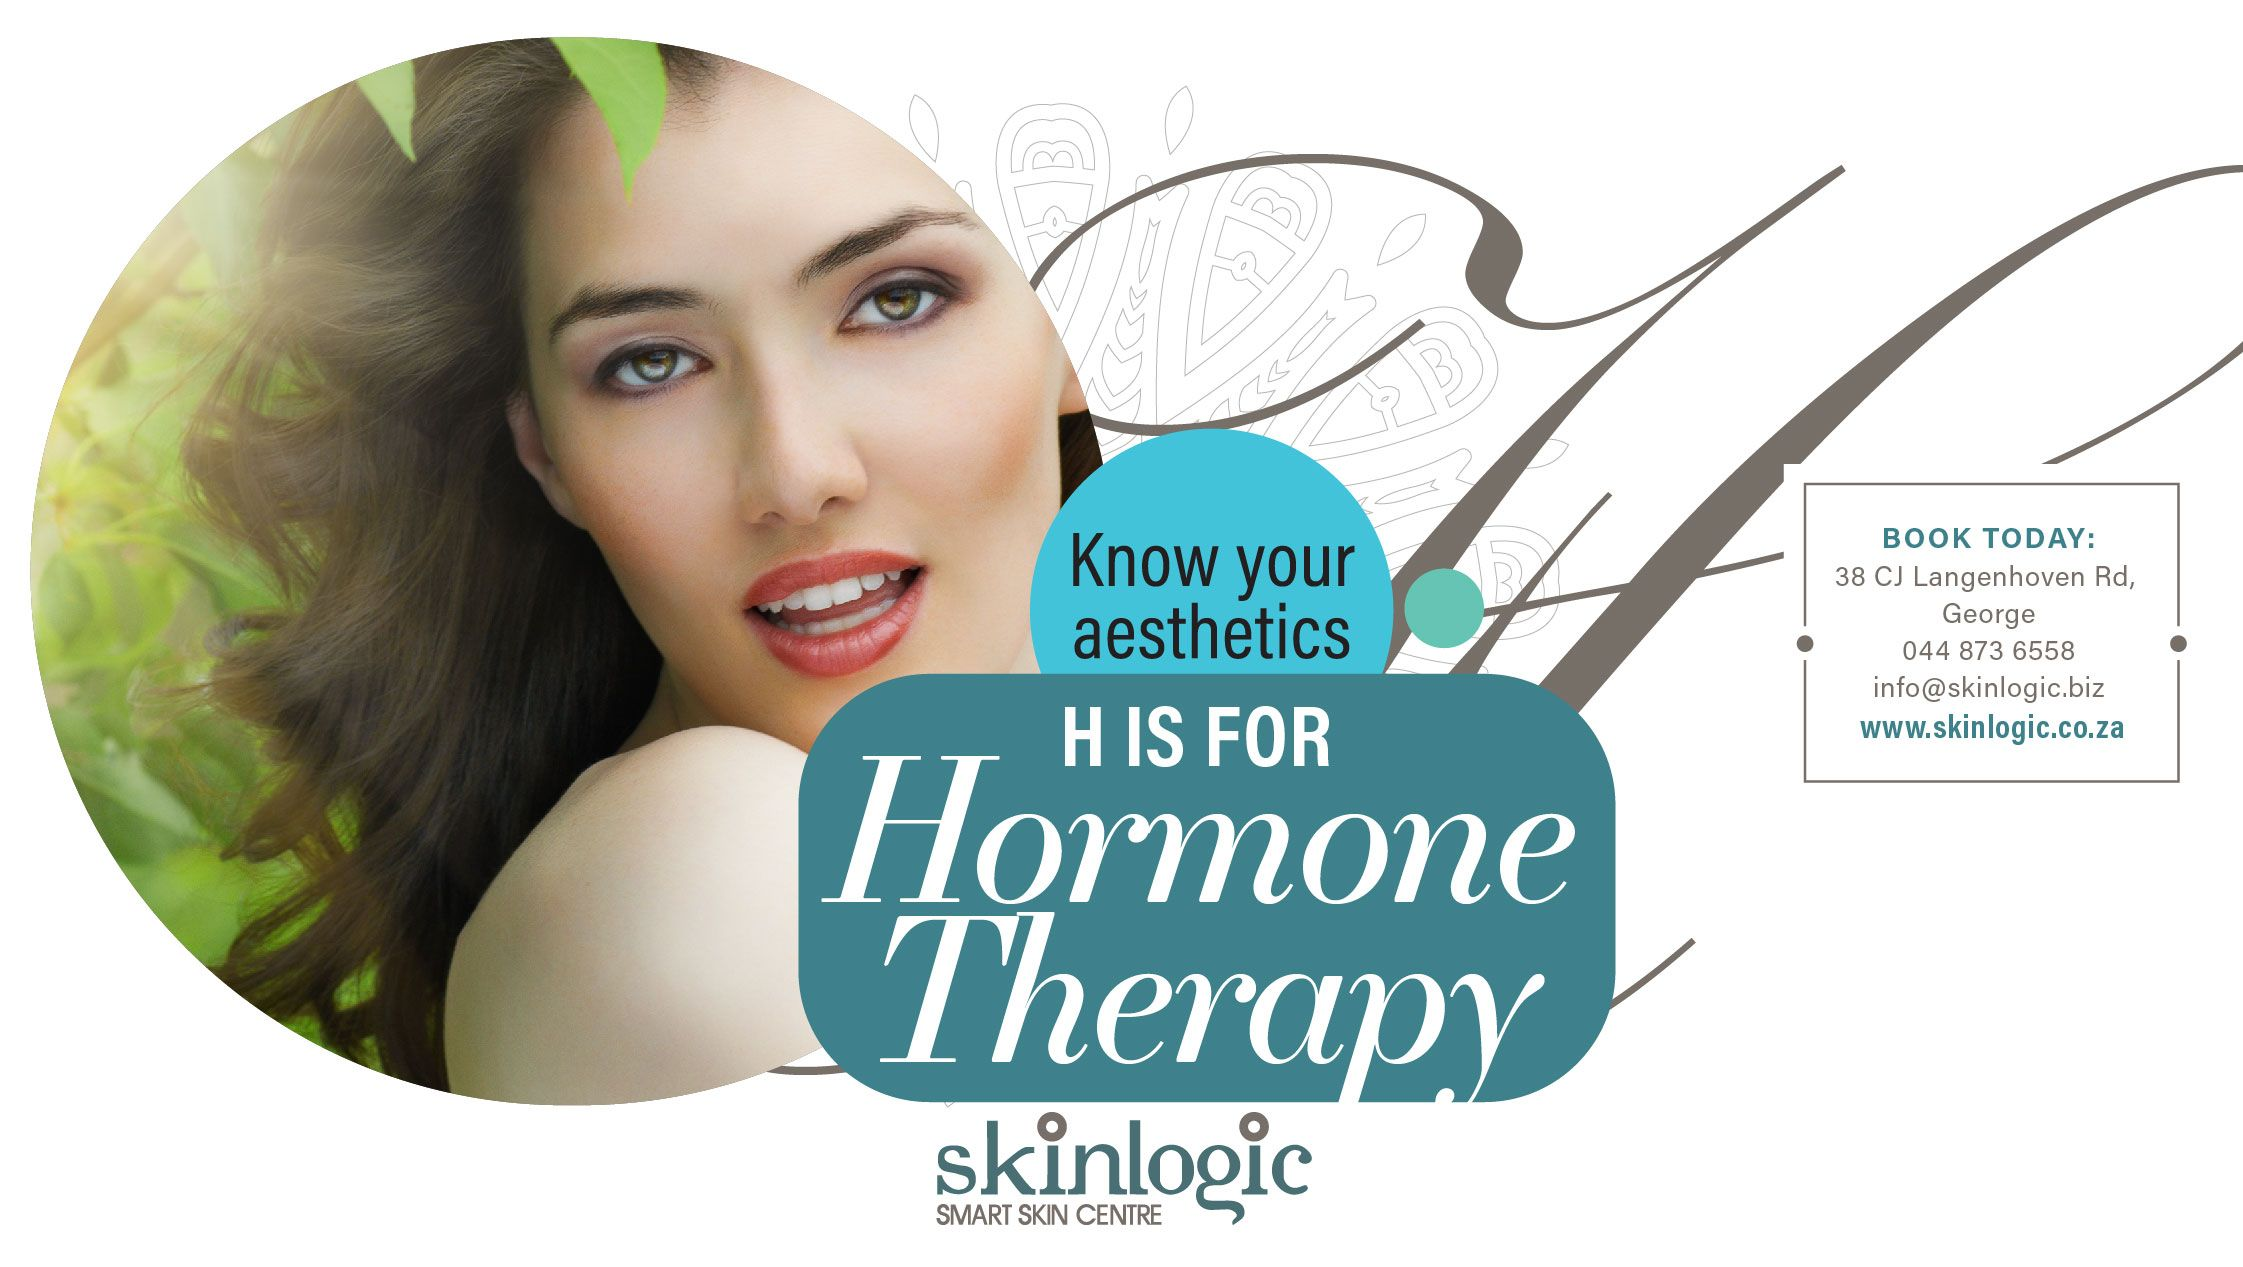 Bioidentical hormone therapy treats a variety of health